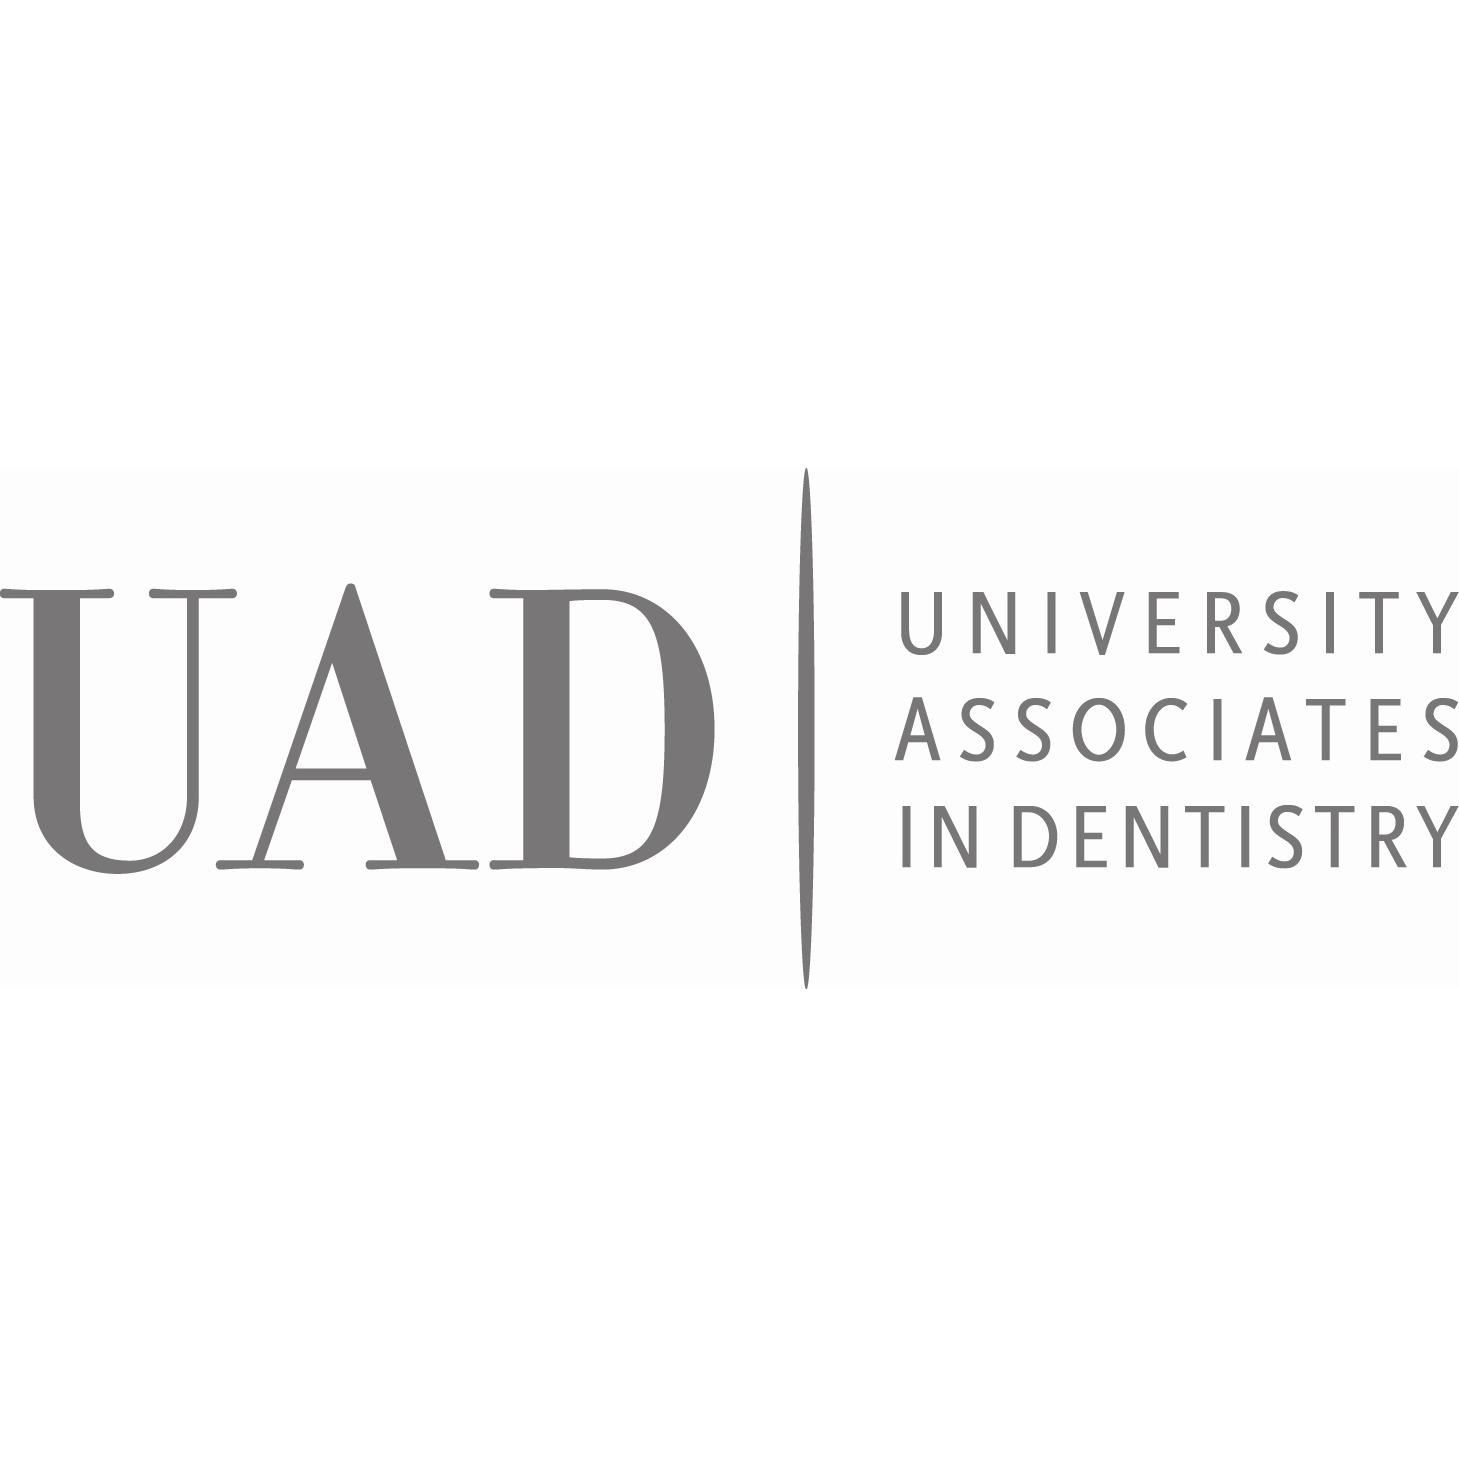 University Associates in Dentistry